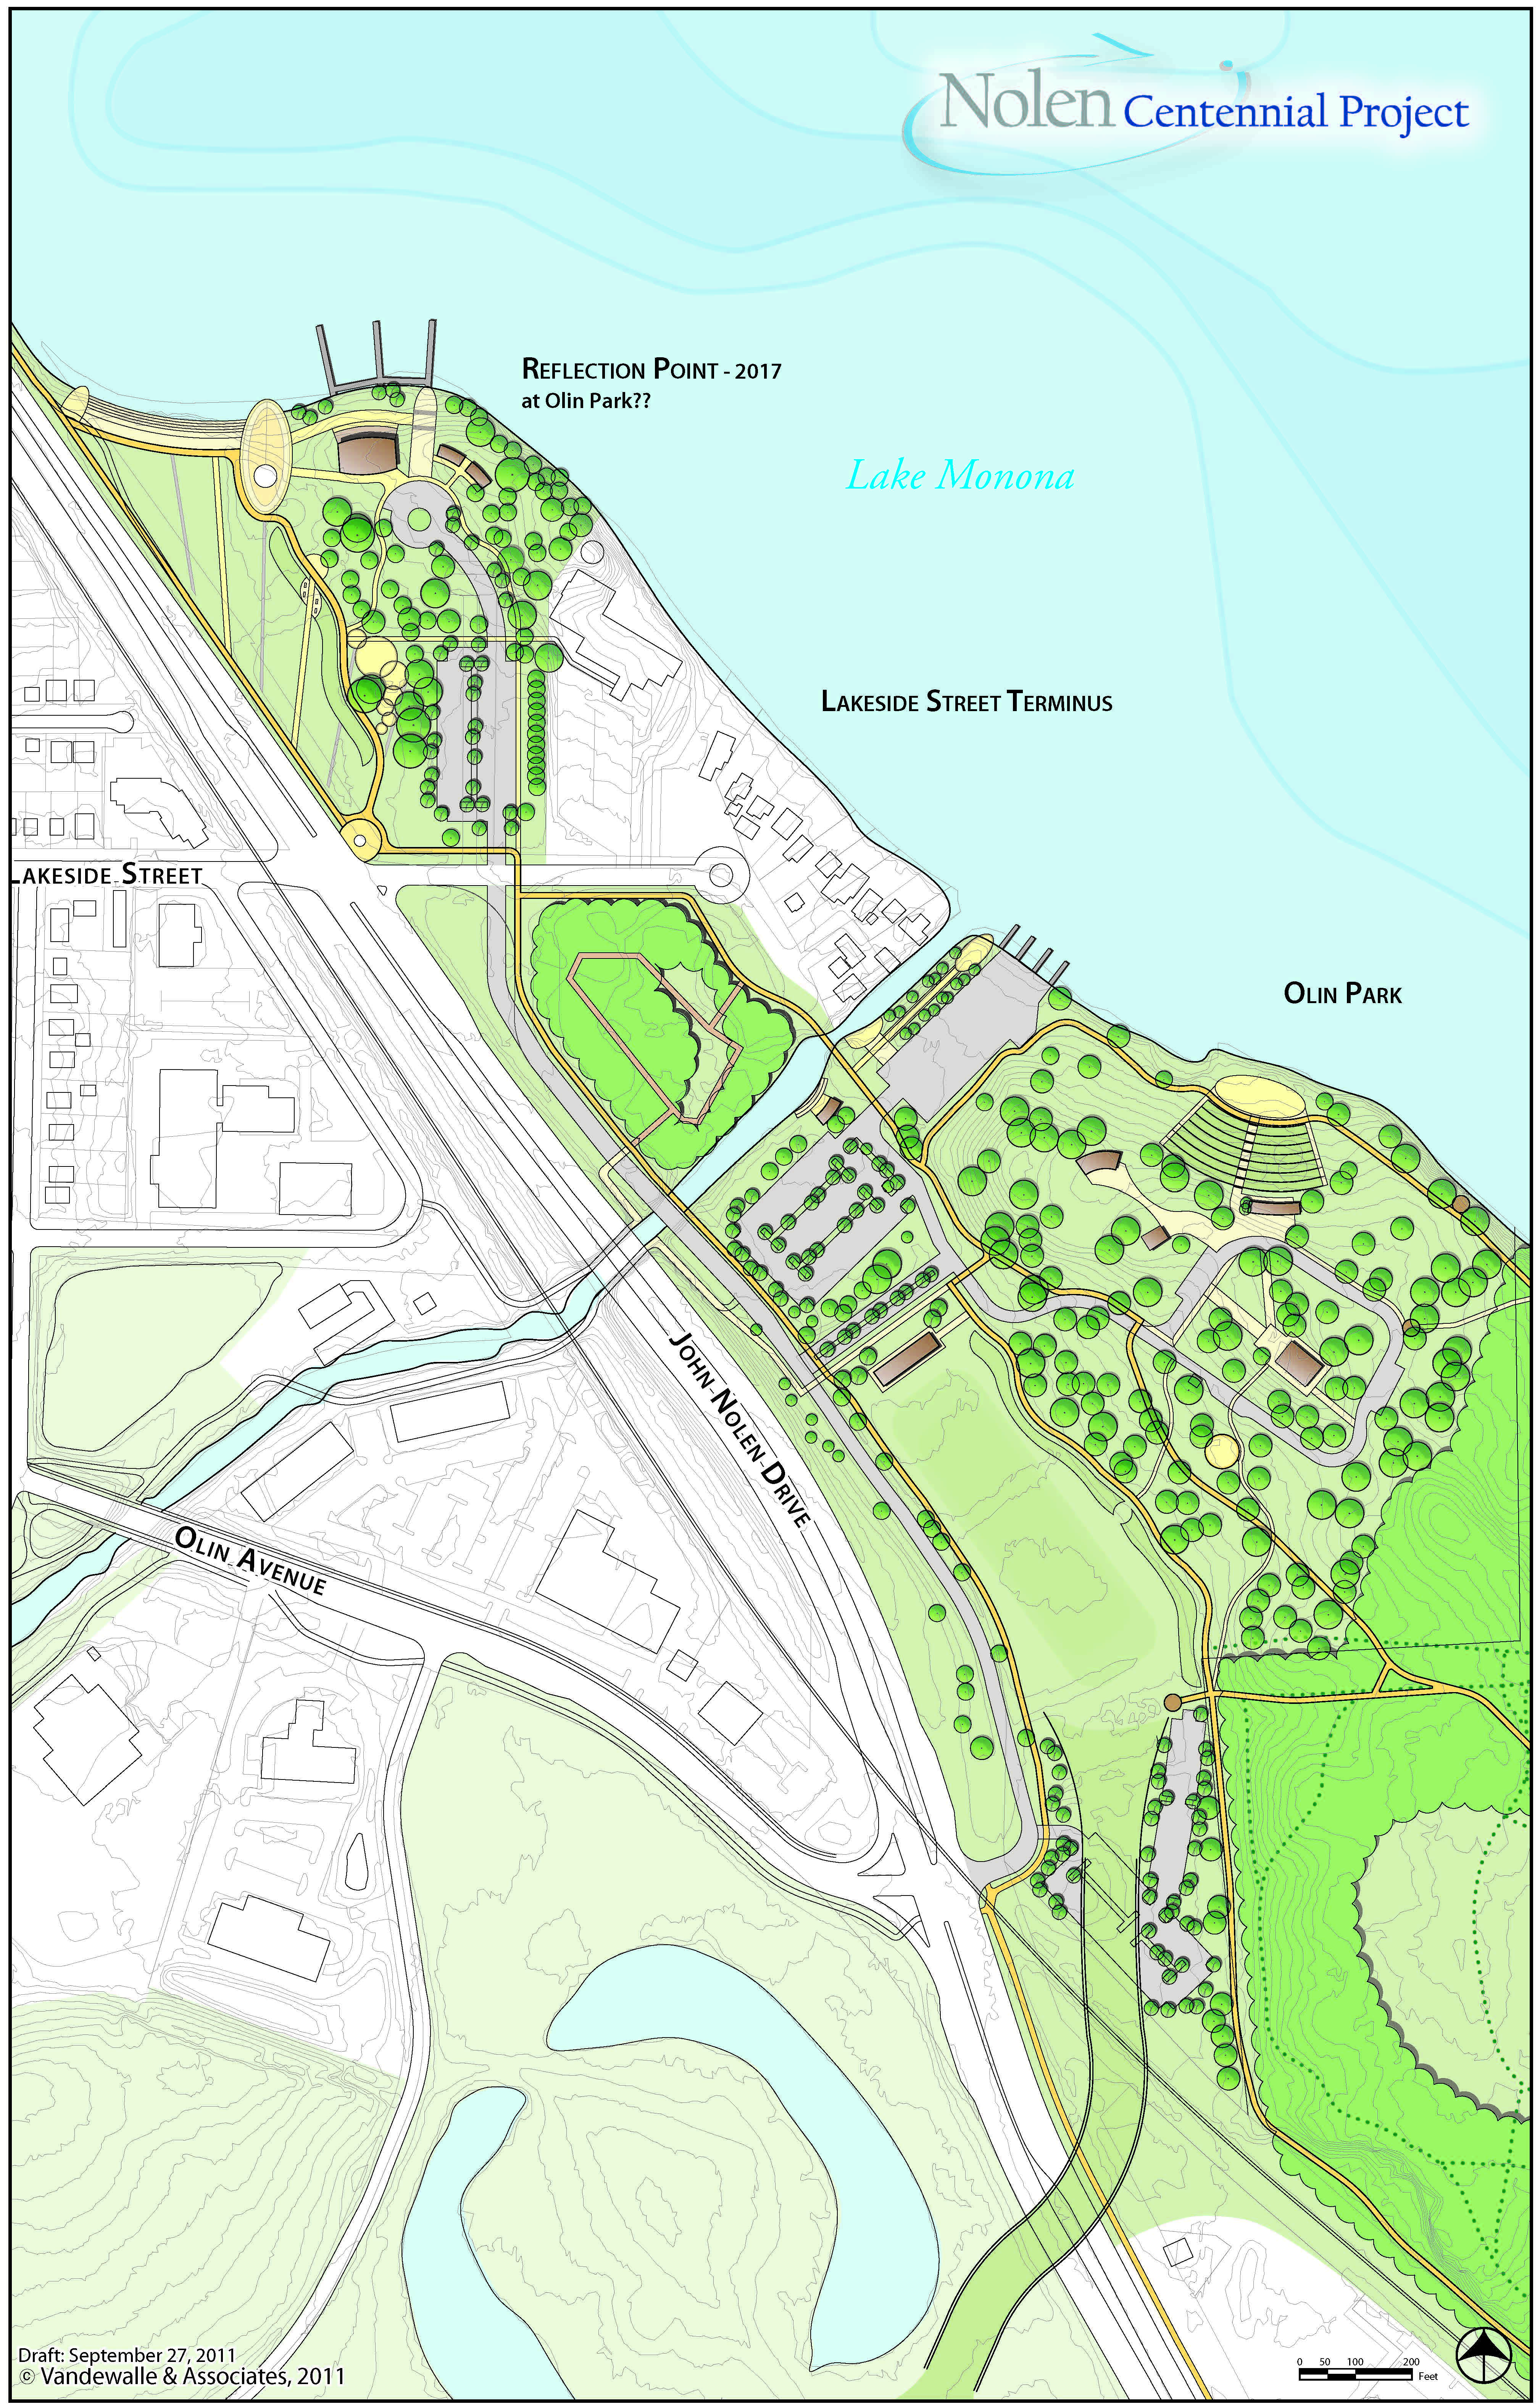 Nolen Master Plan - Concept Plan_with extra layer (9.12.14)_Page_1